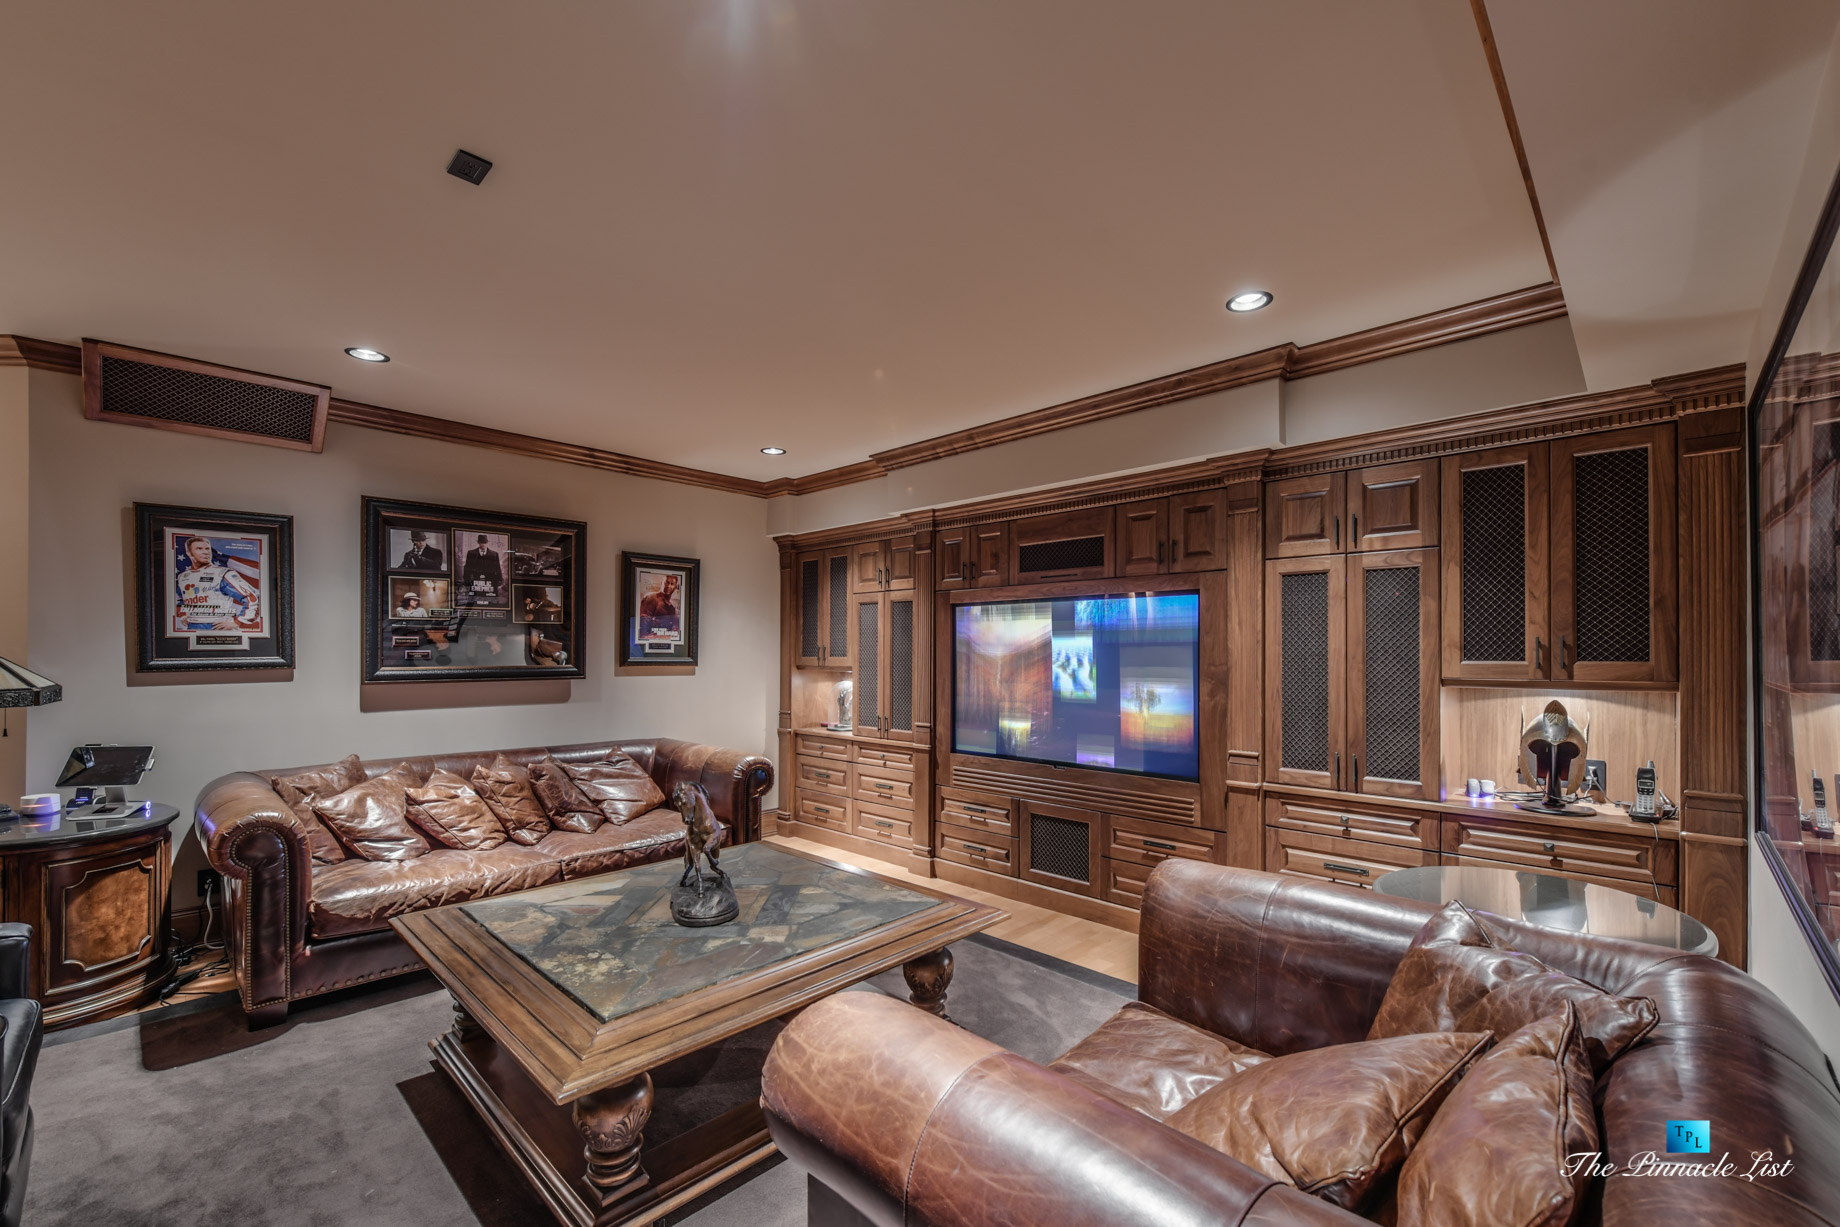 3053 Anmore Creek Way, Anmore, BC, Canada – Basement Man Cave Theatre – Luxury Real Estate – Greater Vancouver Home